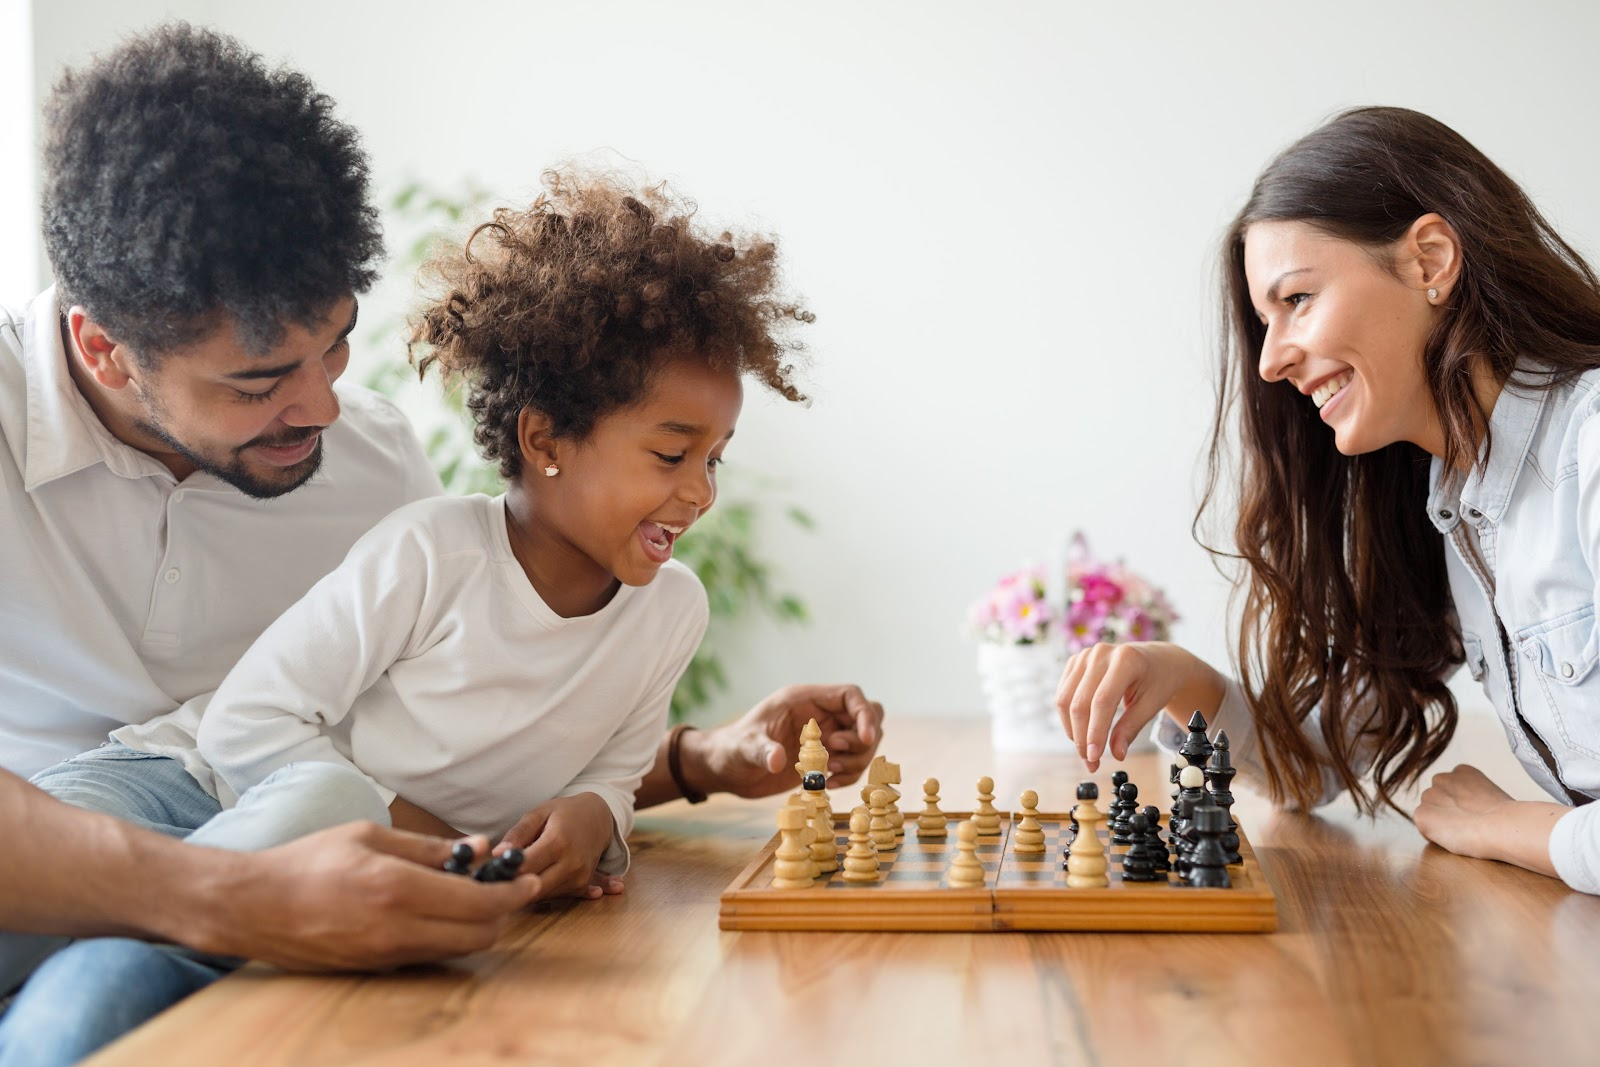 A mother and father play chess while their child watches.